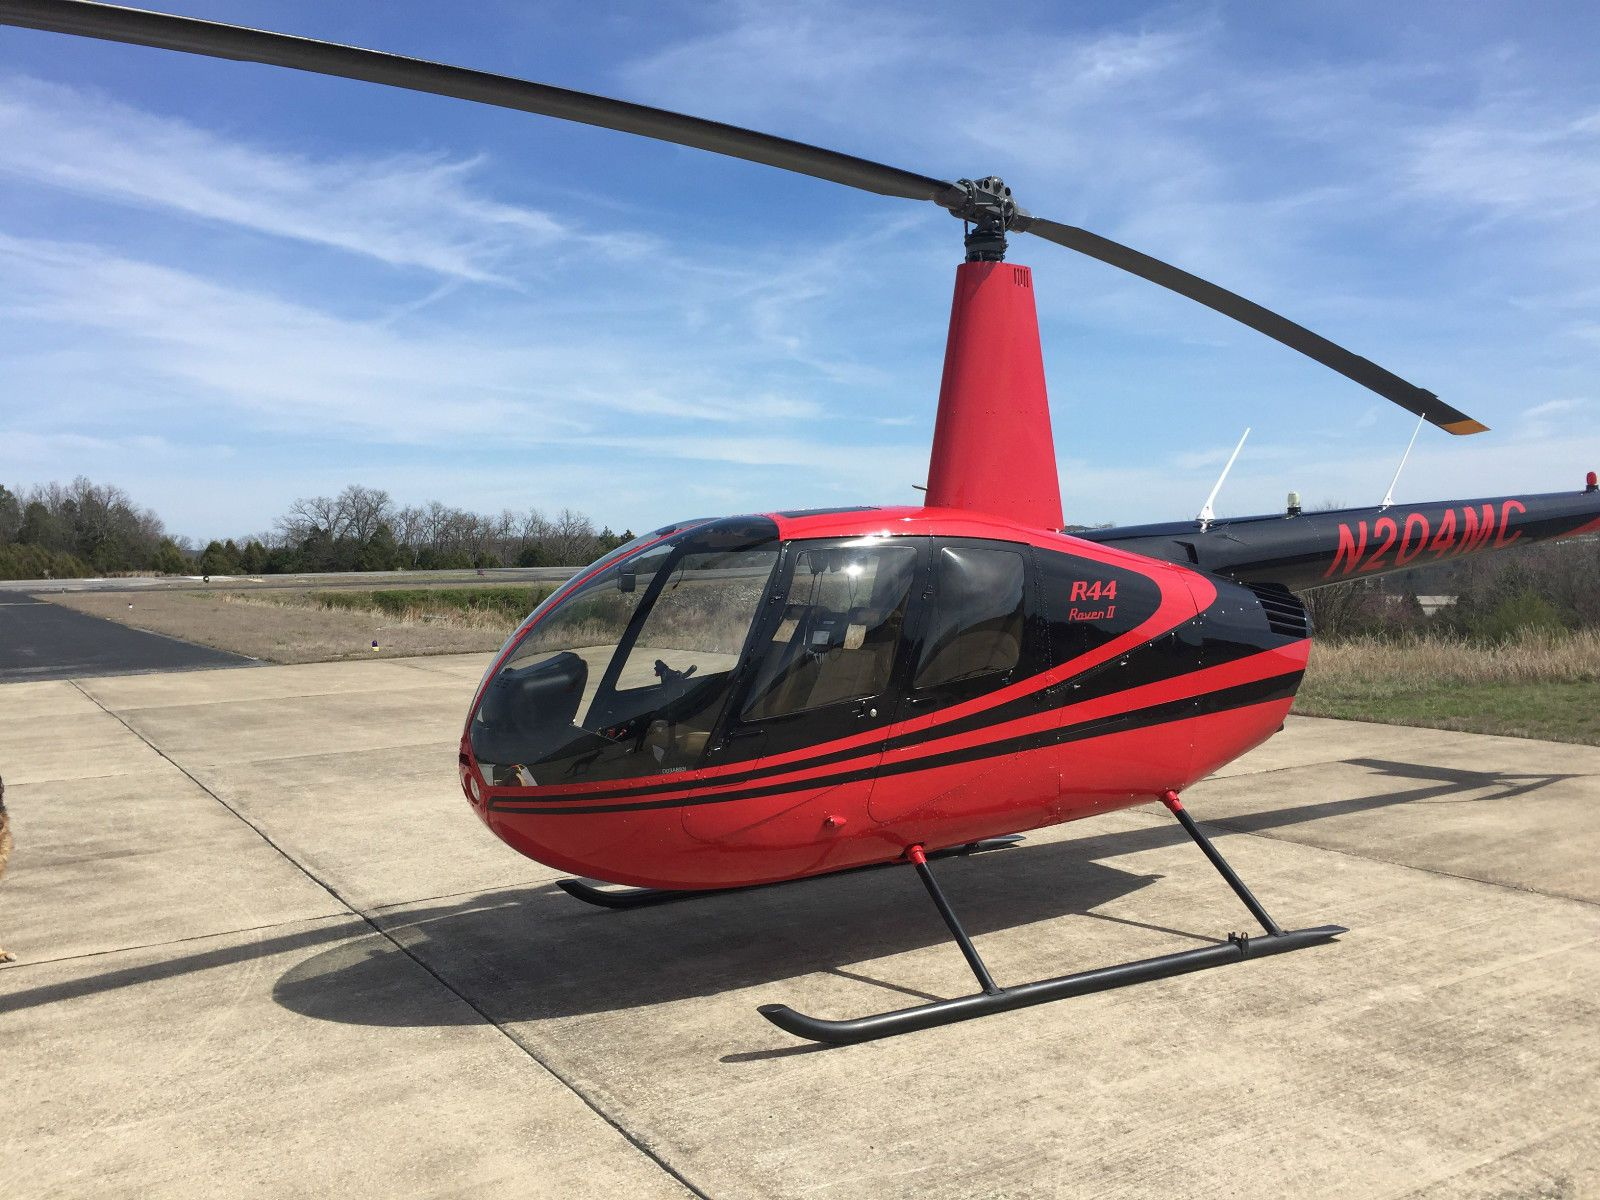 Robinson R44 Raven Ii Helicopter W Air Conditioning